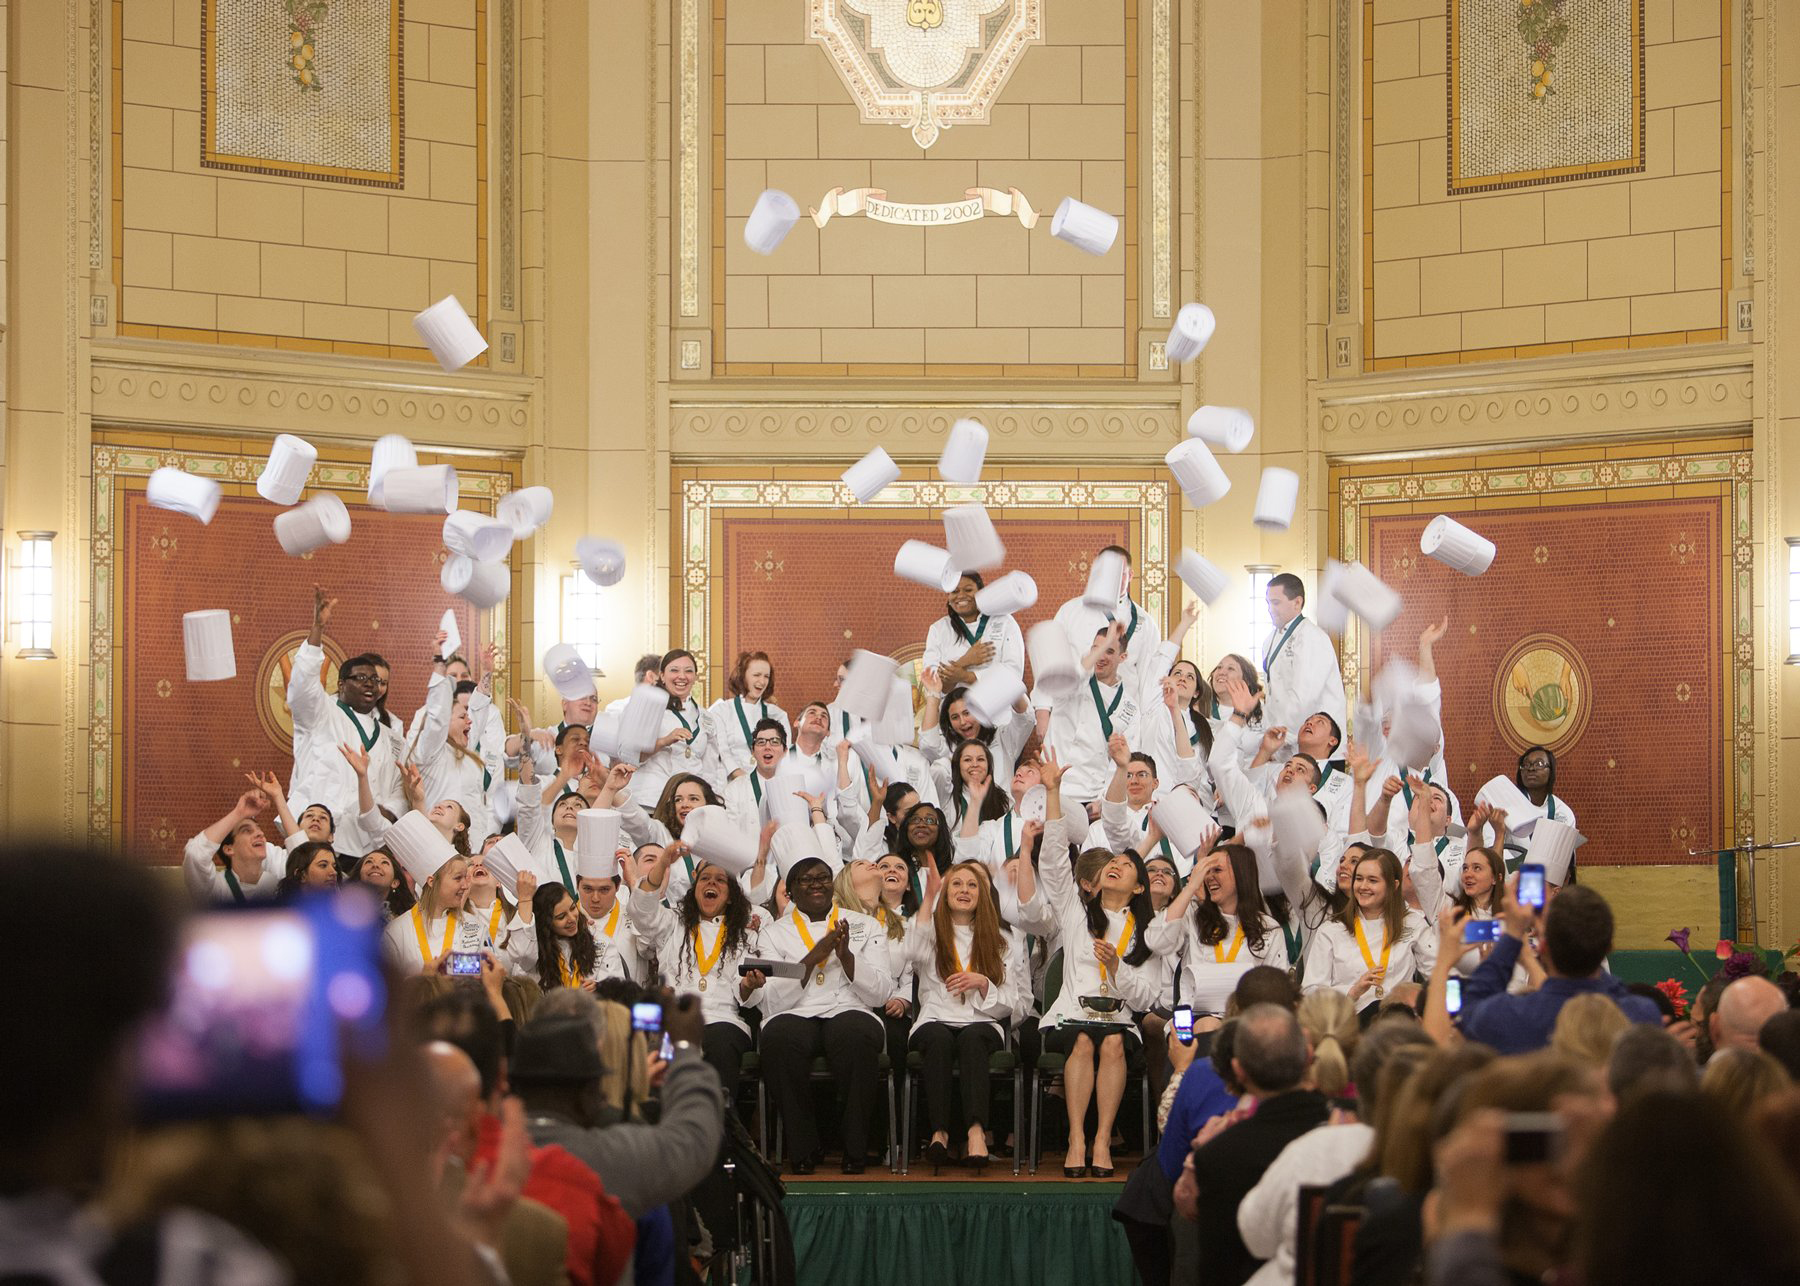 Culinary Institute Of America New York >> Kitchen Culture Founder Speaks at CIA Commencement ...